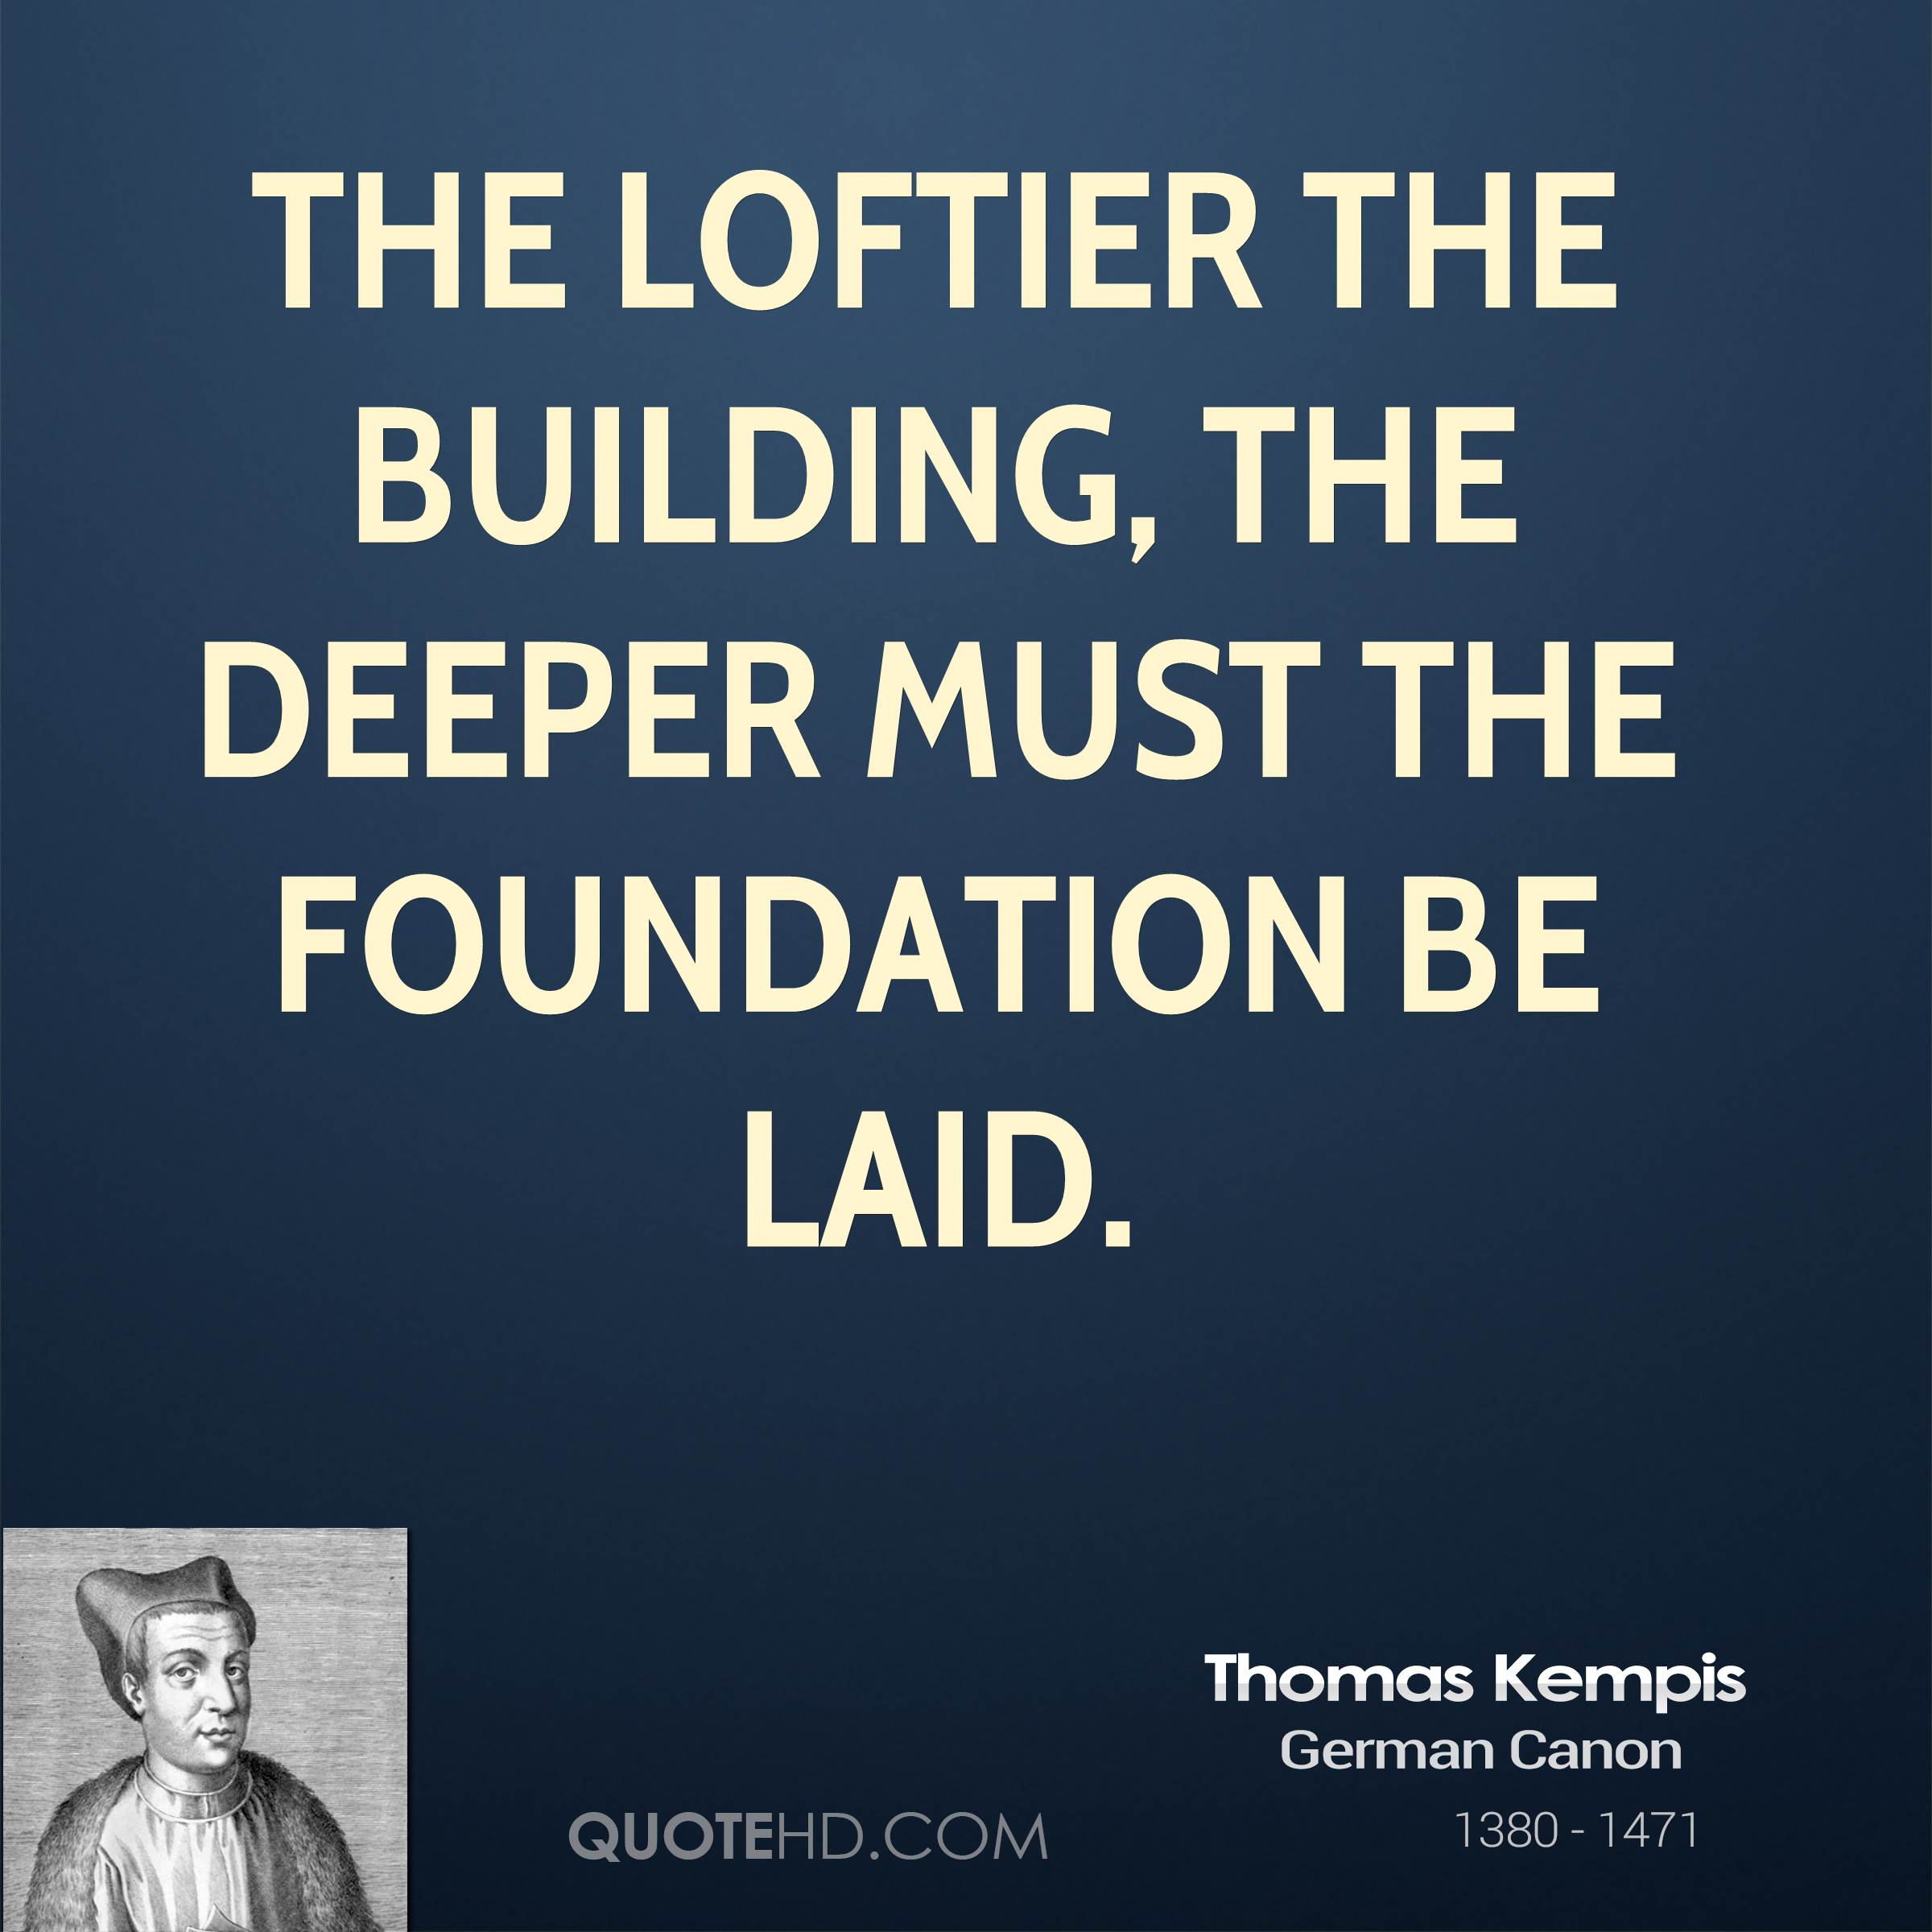 The loftier the building, the deeper must the foundation be laid.